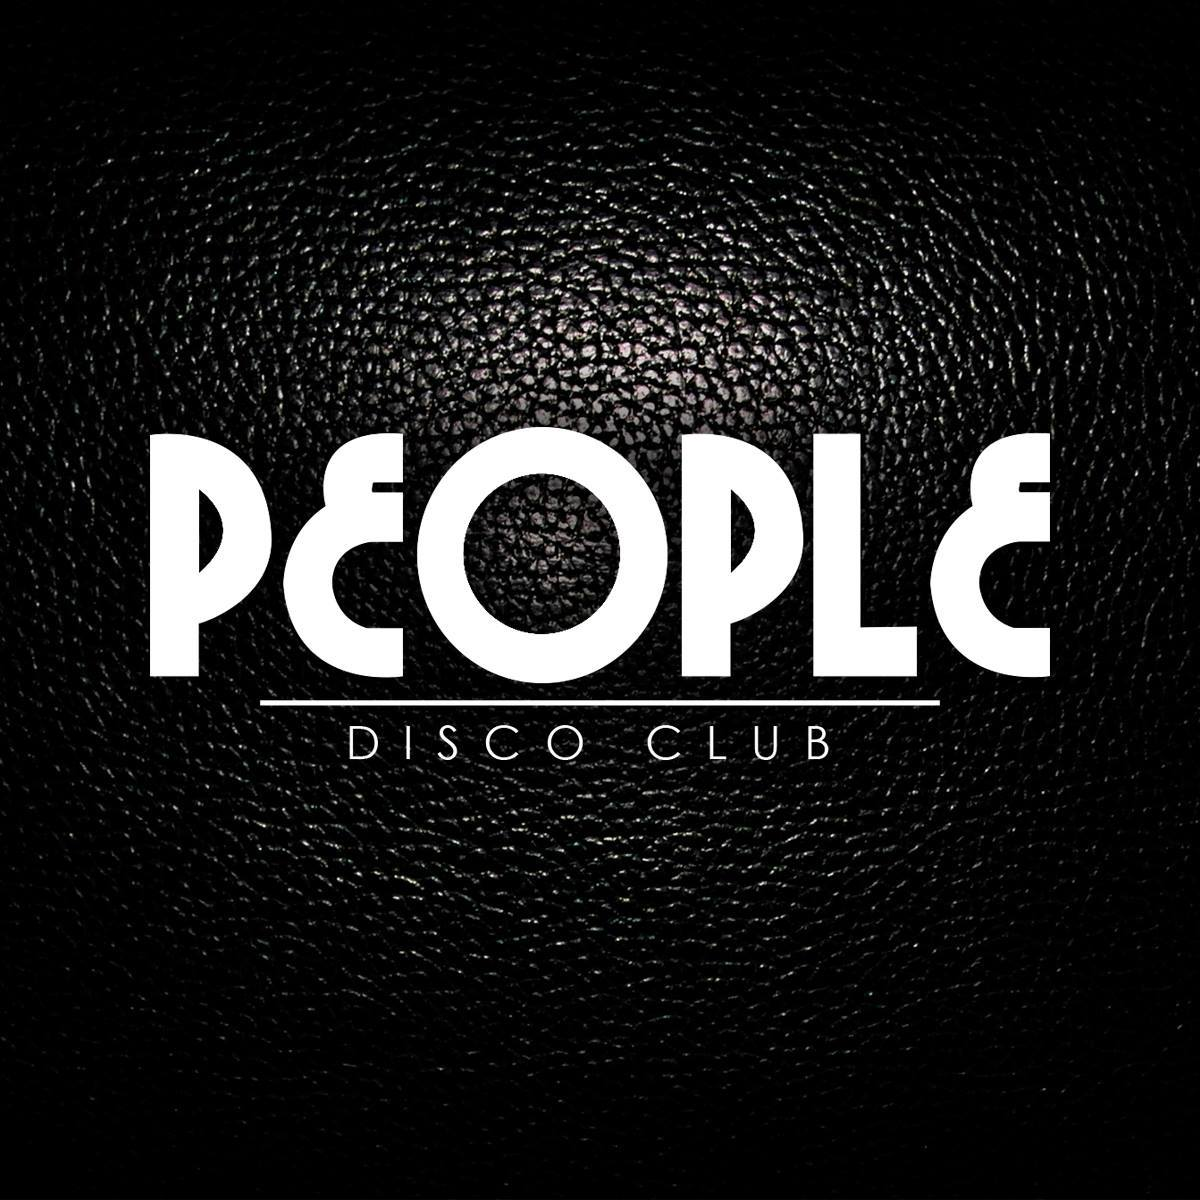 People Disco Club